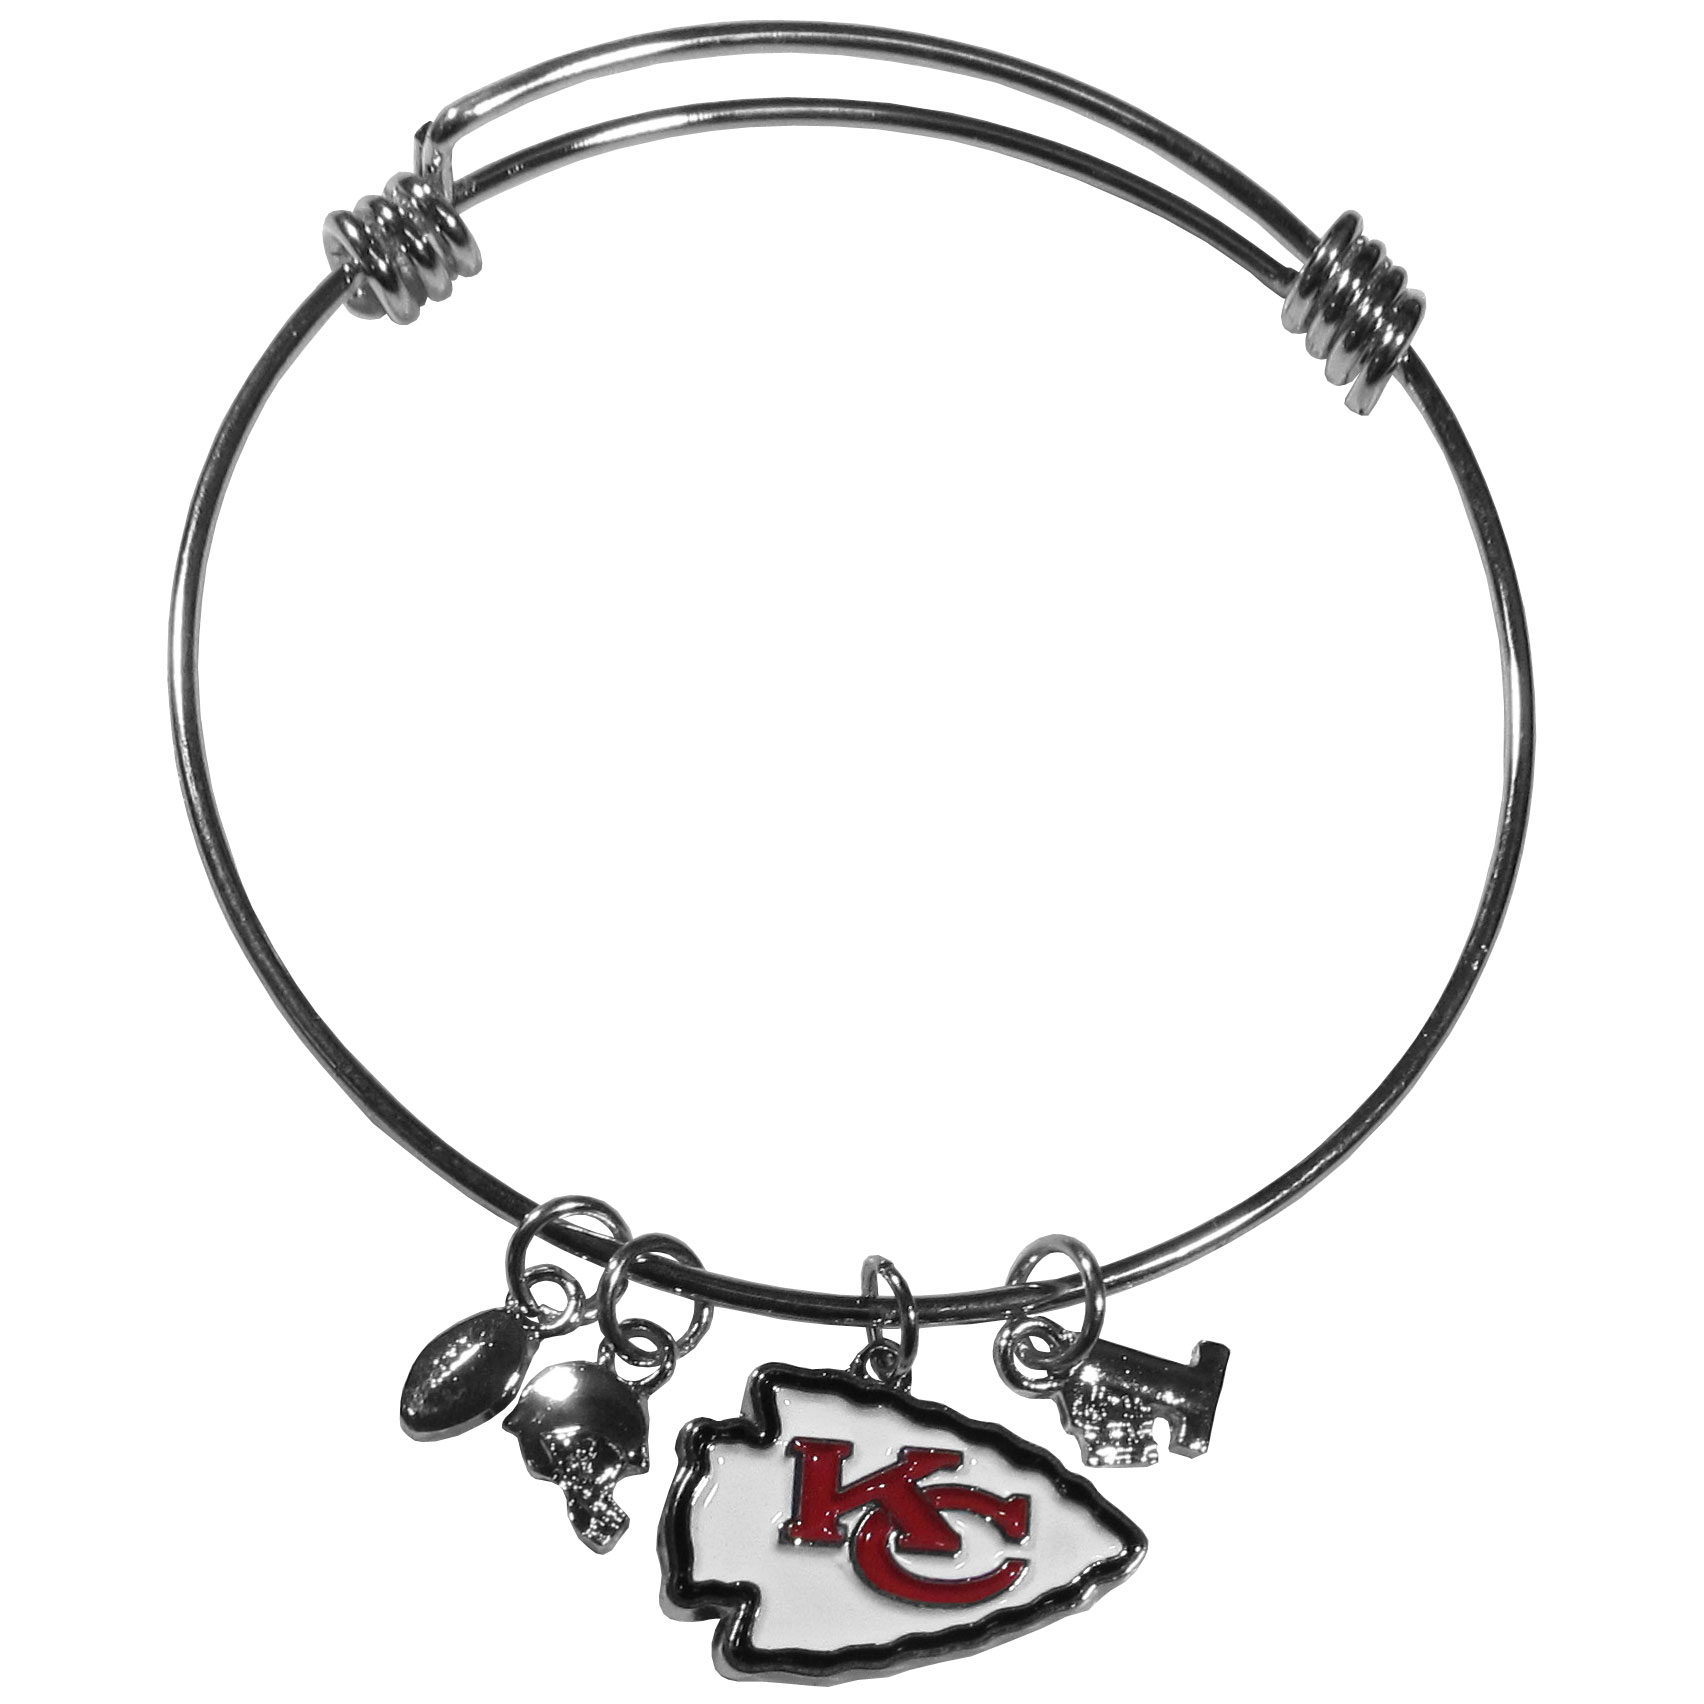 Kansas City Chiefs Charm Bangle Bracelet - Adjustable wire bracelets are all the rage and this Kansas City Chiefs bracelet matches the popular trend with your beloved team. The bracelet features 4 charms in total, each feature exceptional detail and the team charm has enameled team colors.